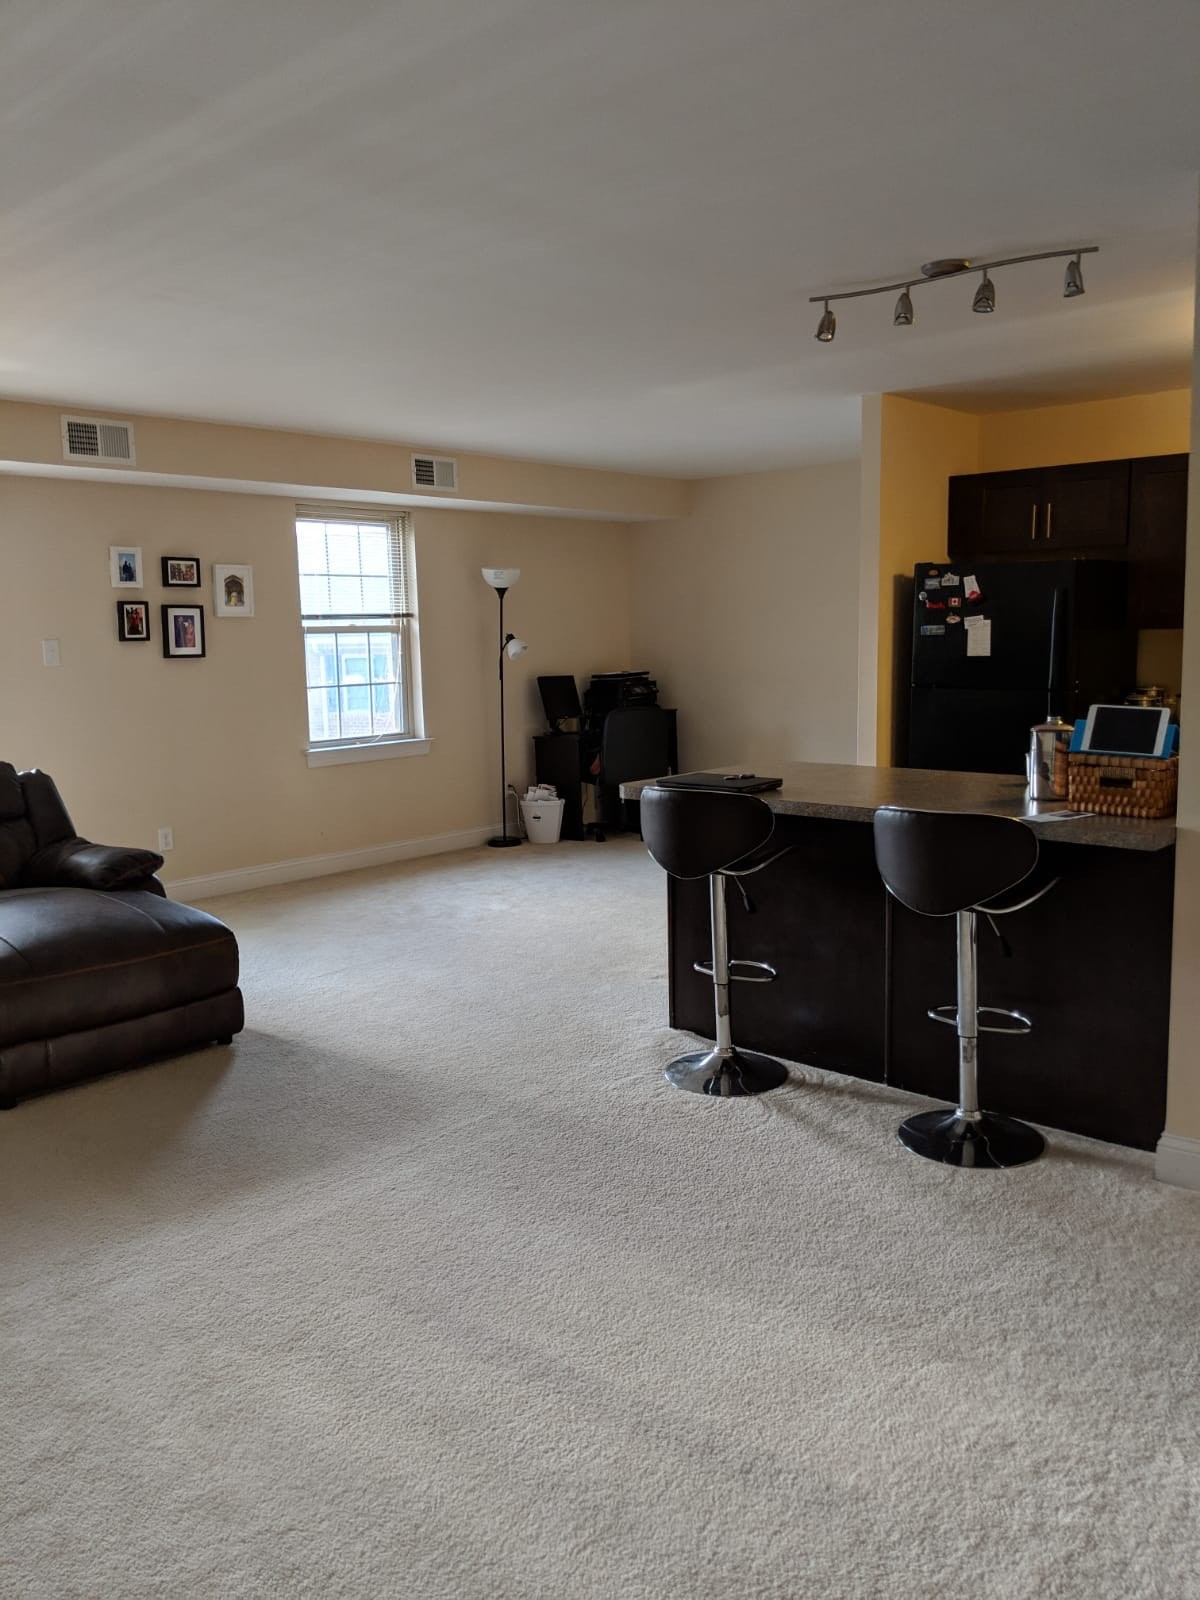 Single Bedroom Available For Rent In Sdk Stratford Apartments